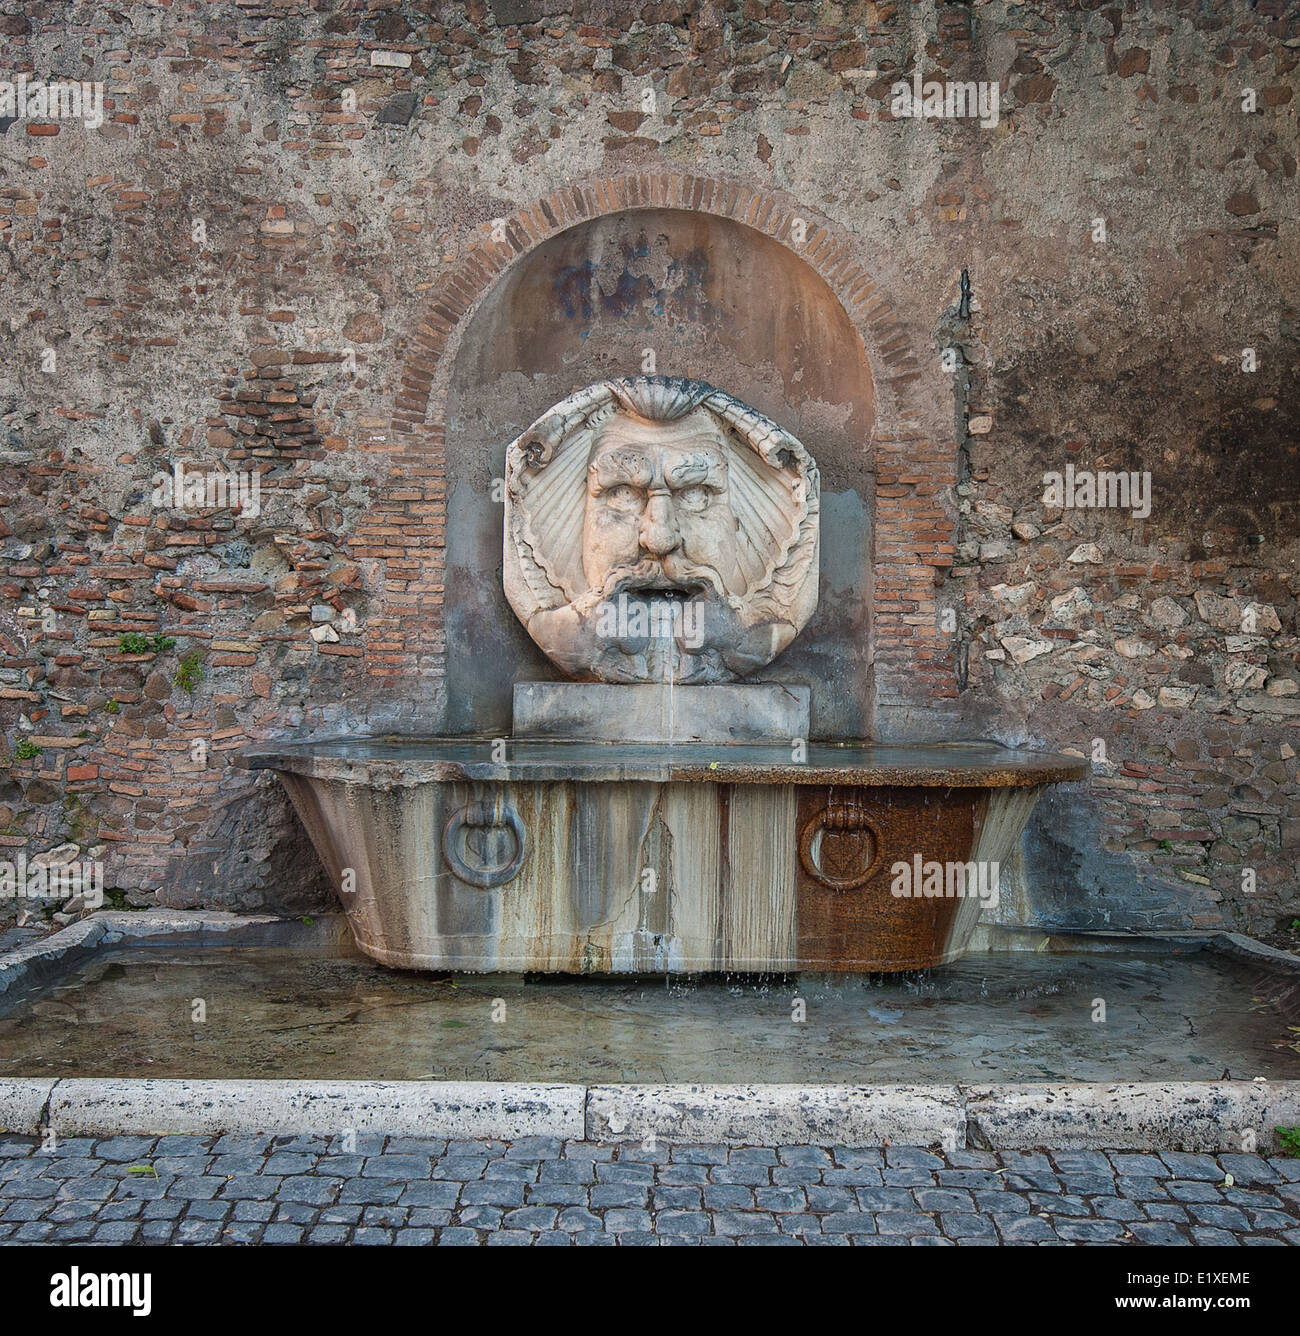 Fountain in Aventine Hill, Rome, Italy - Stock Image